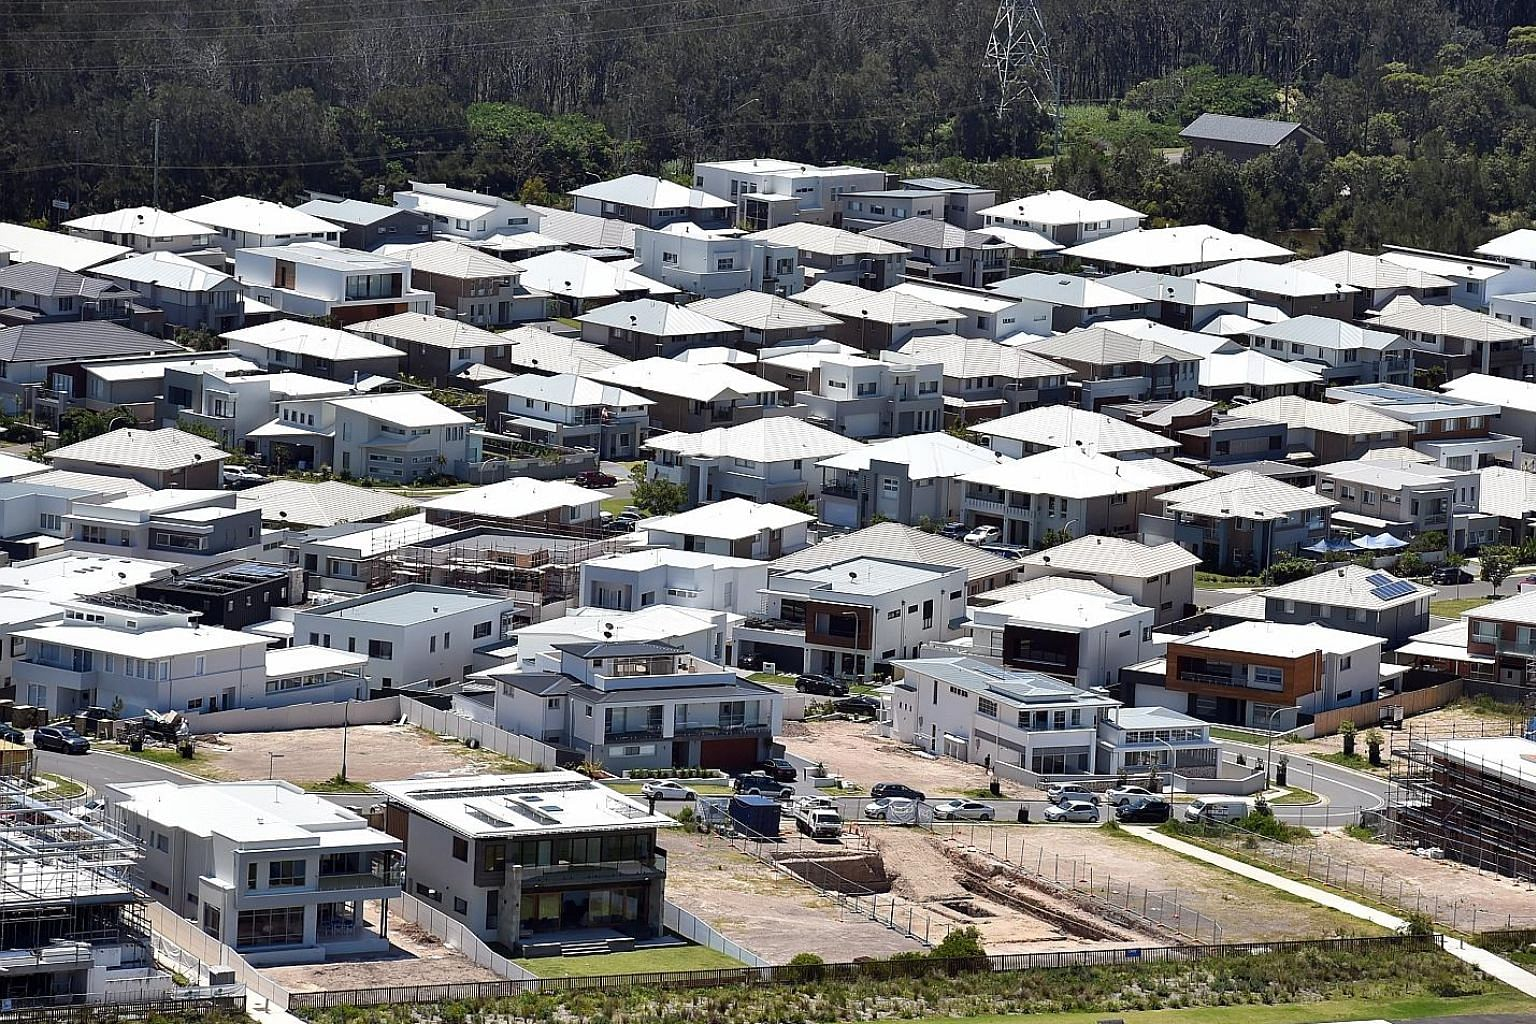 A housing estate near Green Hills Beach at Cronulla in Sydney. In Sydney, home prices stumbled nearly 9 per cent on the year, while Melbourne saw an annual drop of 7 per cent. Sydney and Melbourne comprise about 60 per cent of Australia's housing mar